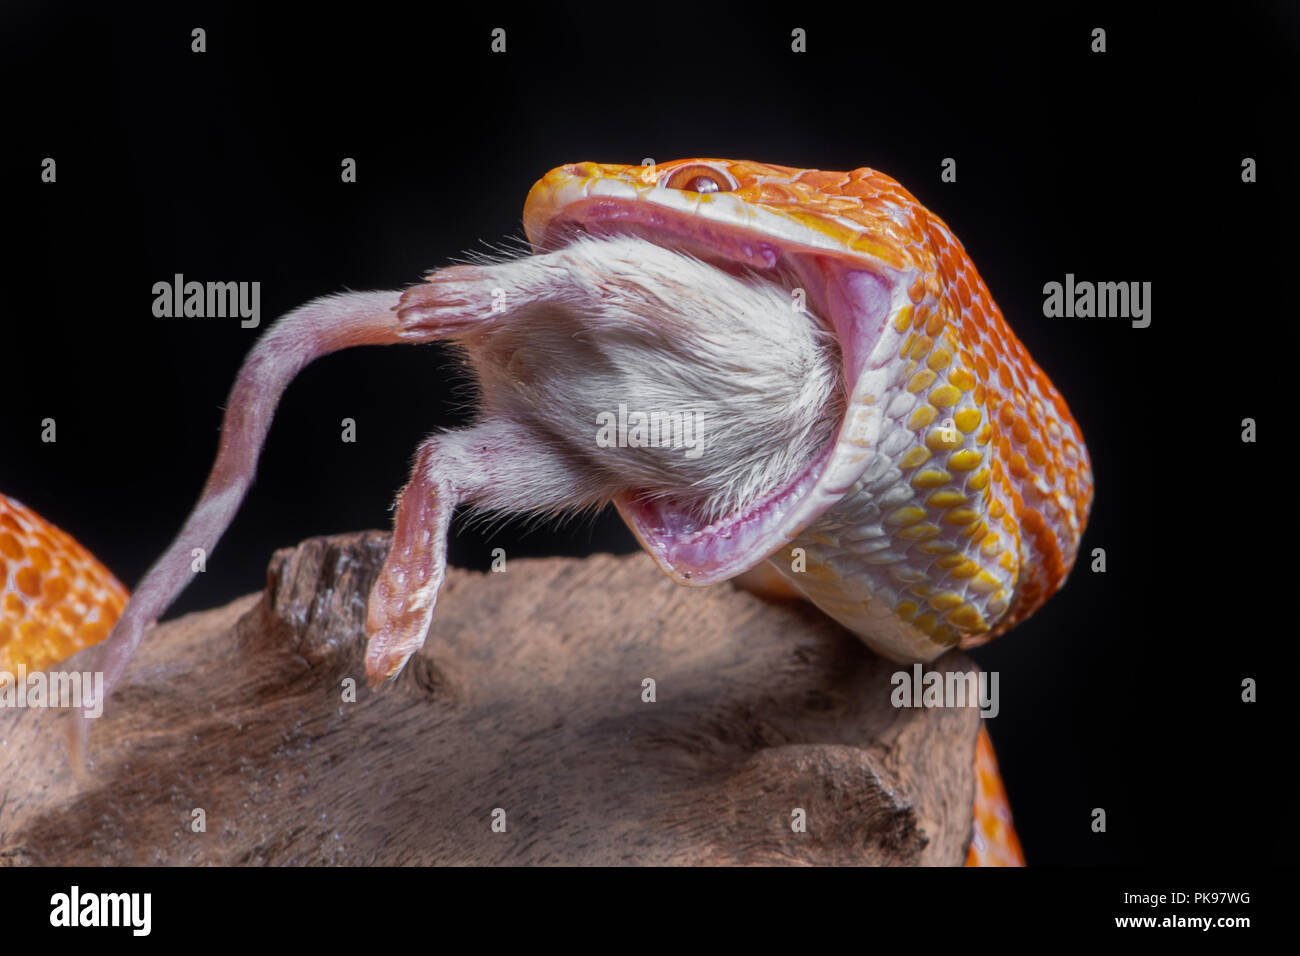 A corn snake feeding on a mouse, The snake has its jaws wide open and a white mouse is being eaten. It is set against a black background - Stock Image